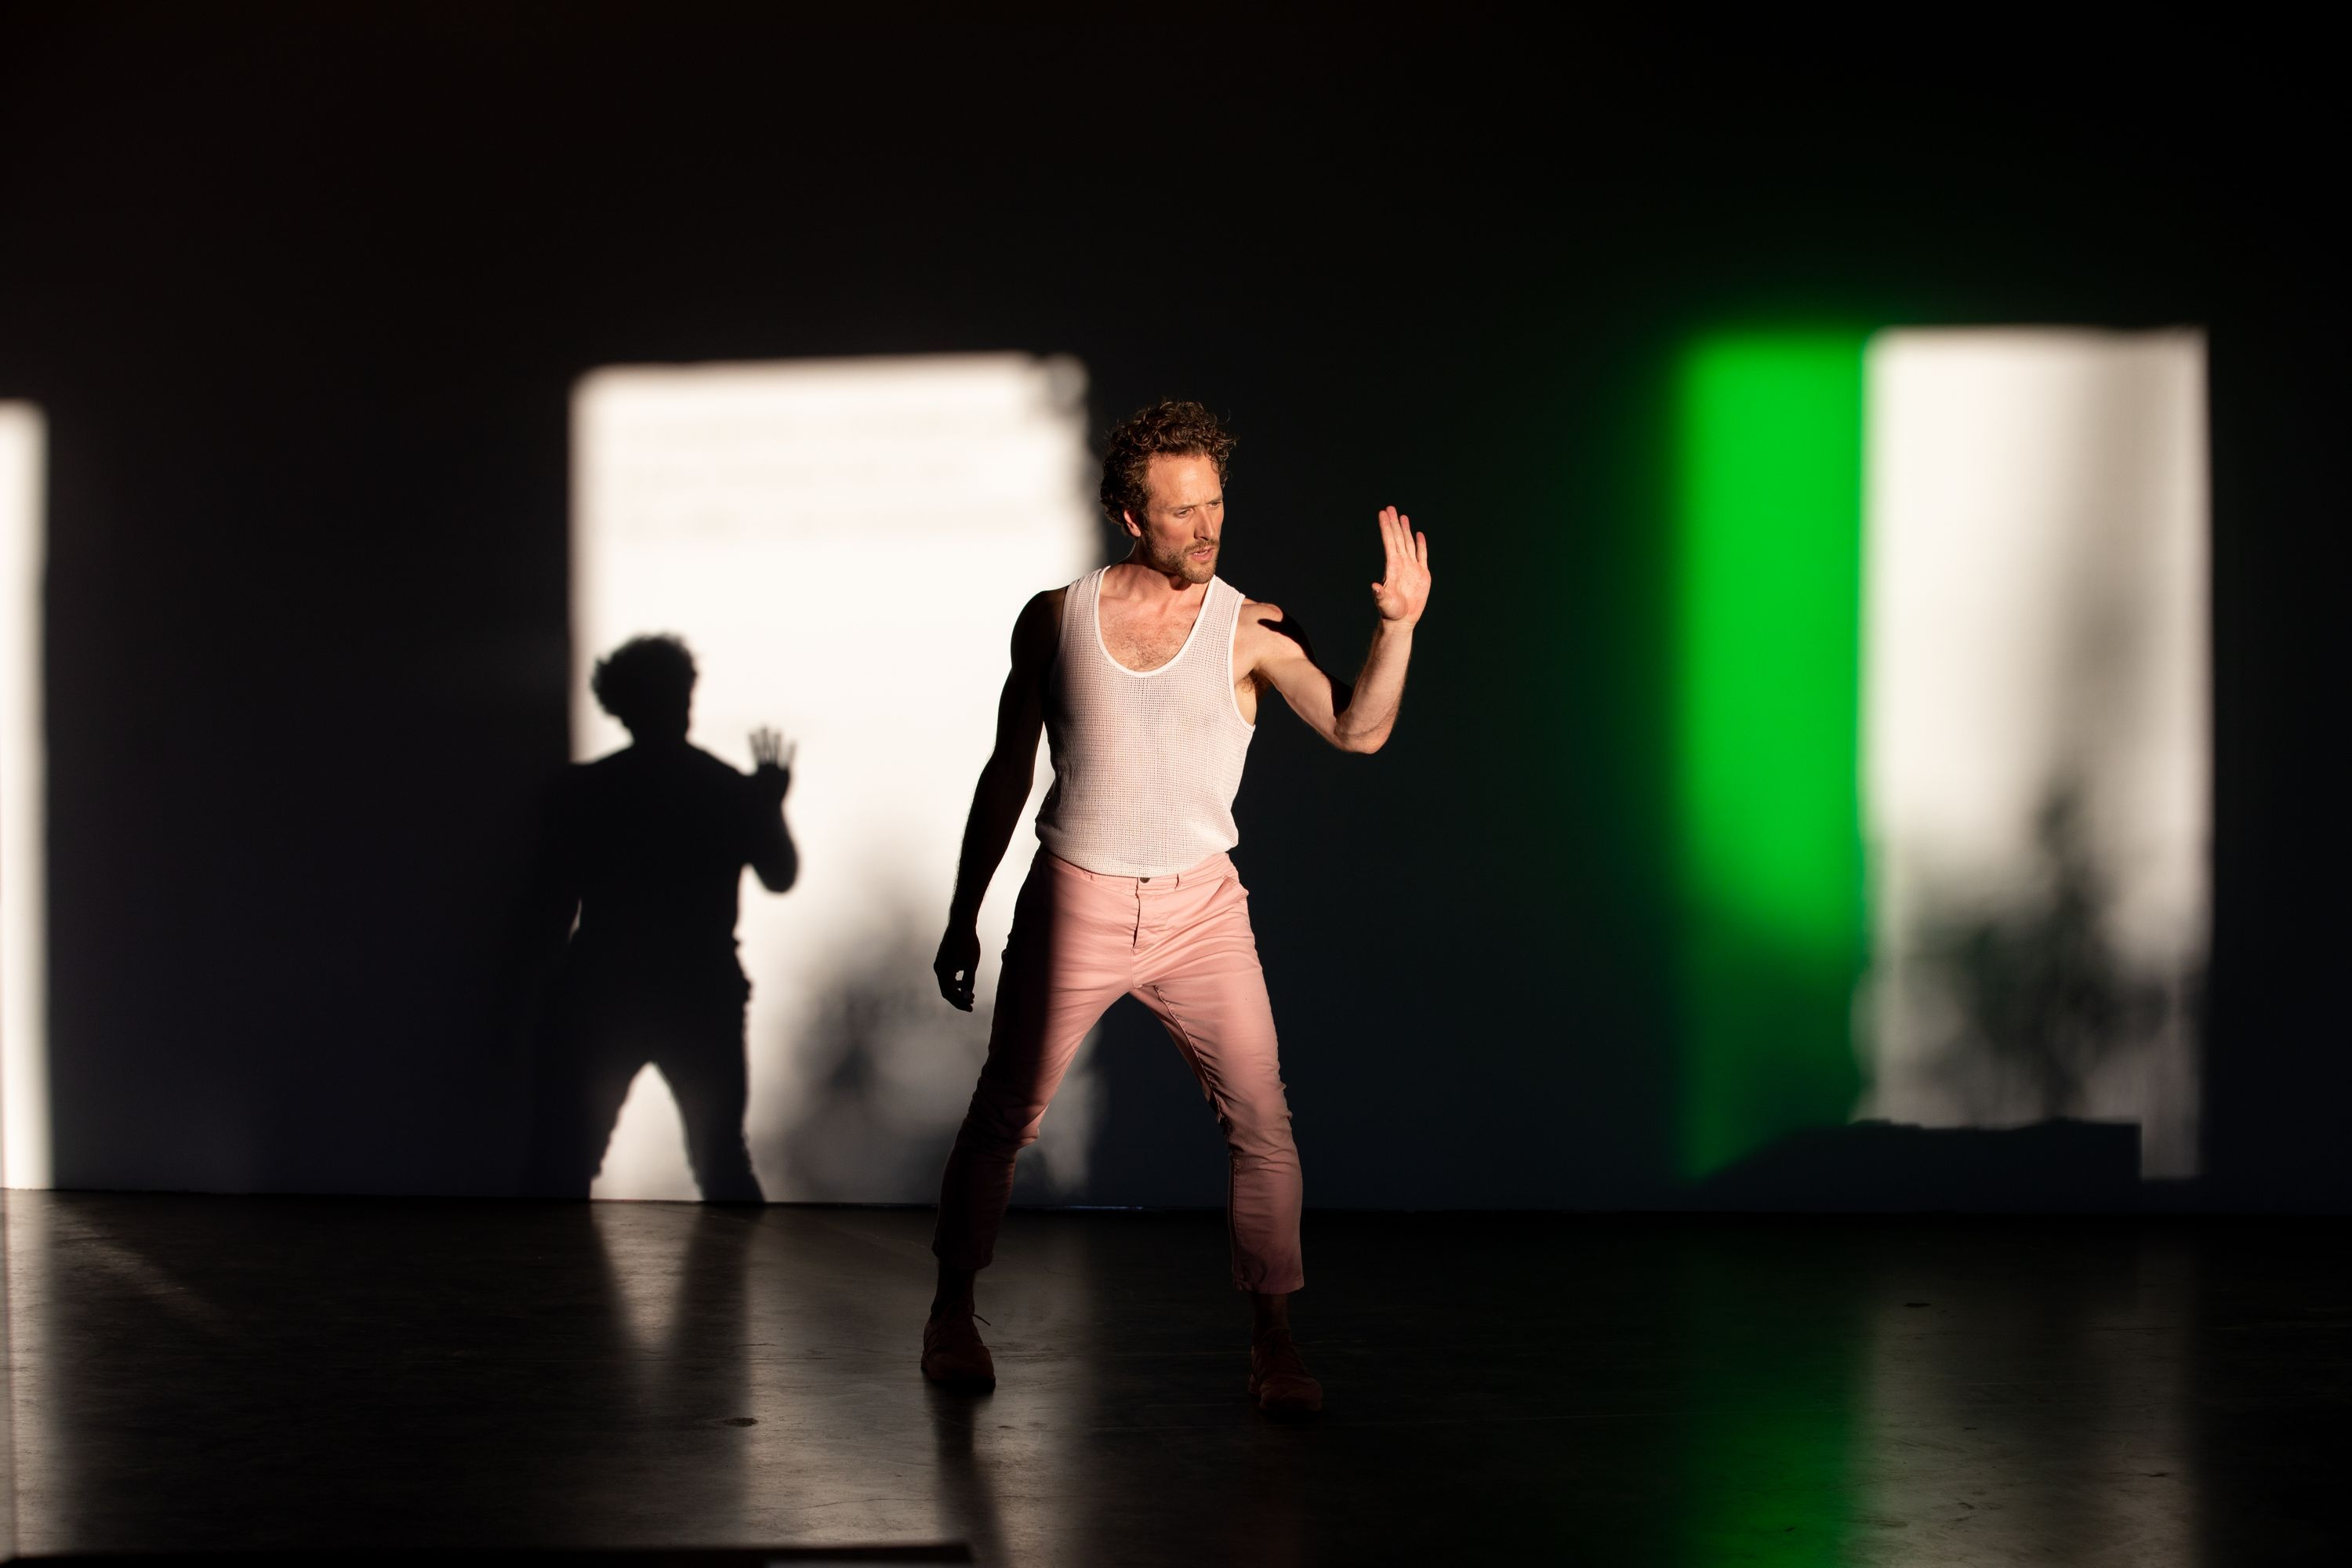 Ryan Kelly dances in CLOCKWORK, with high contrast shadows in the background.